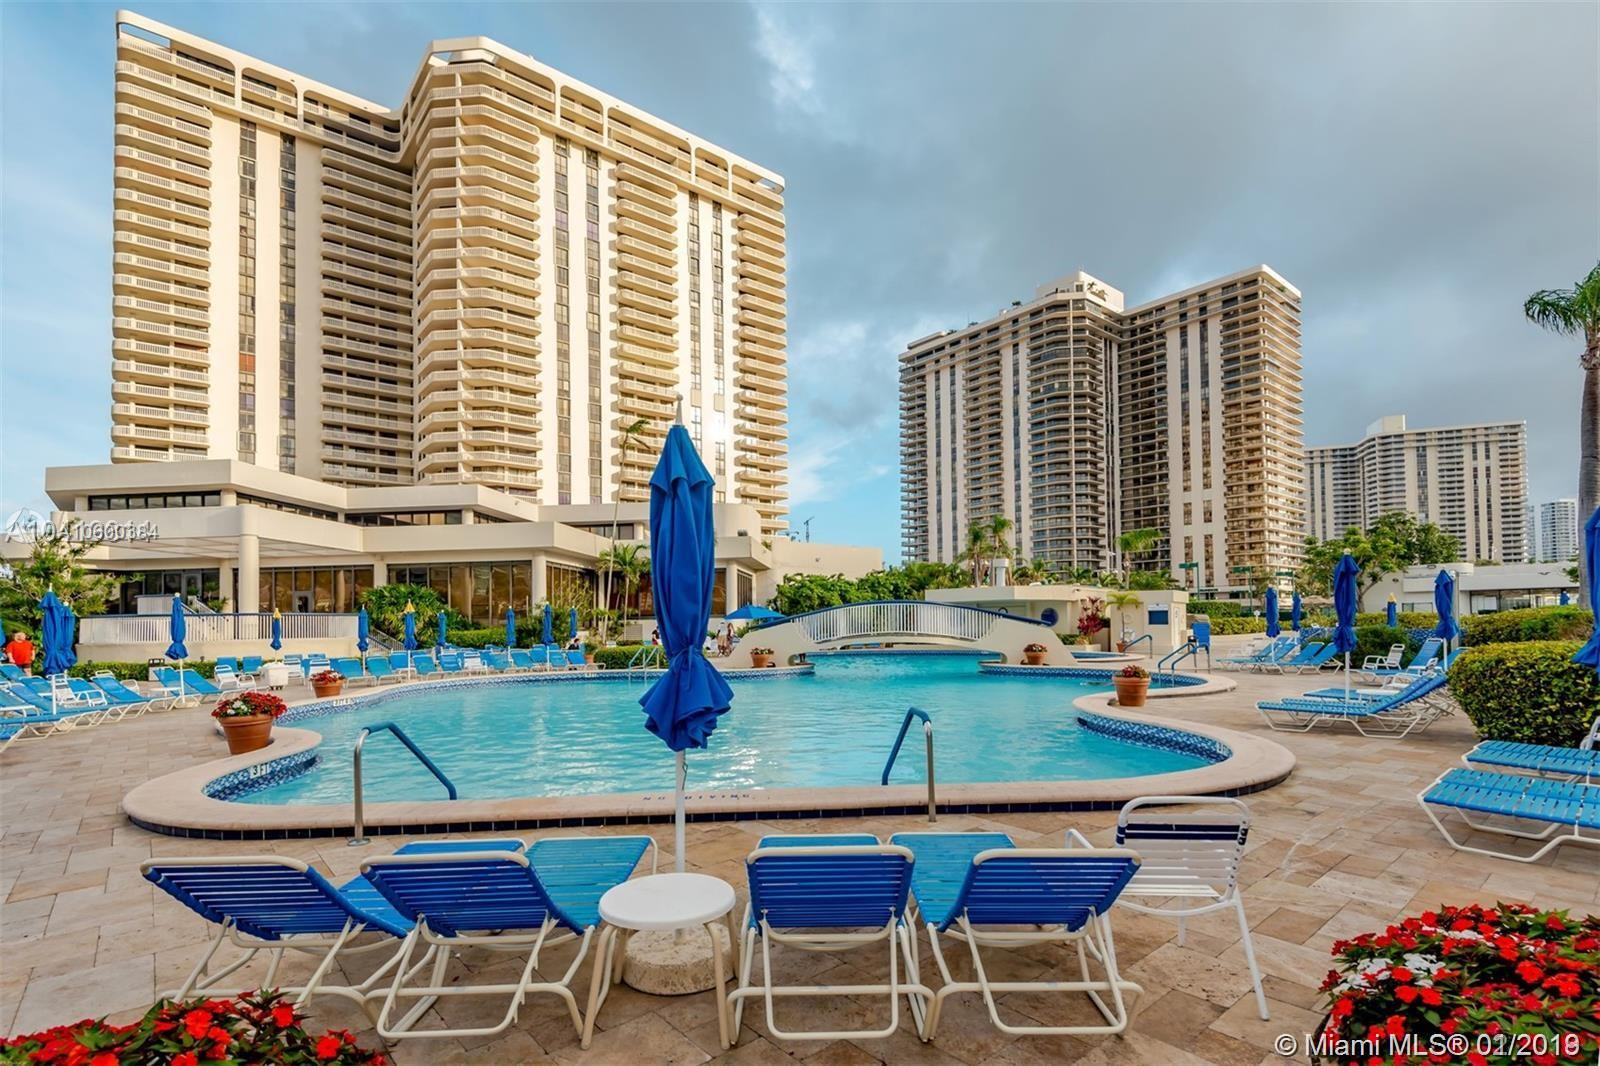 Turnberry Isle North Tower #4A - 19707 Turnberry Way #4A, Aventura, FL 33180